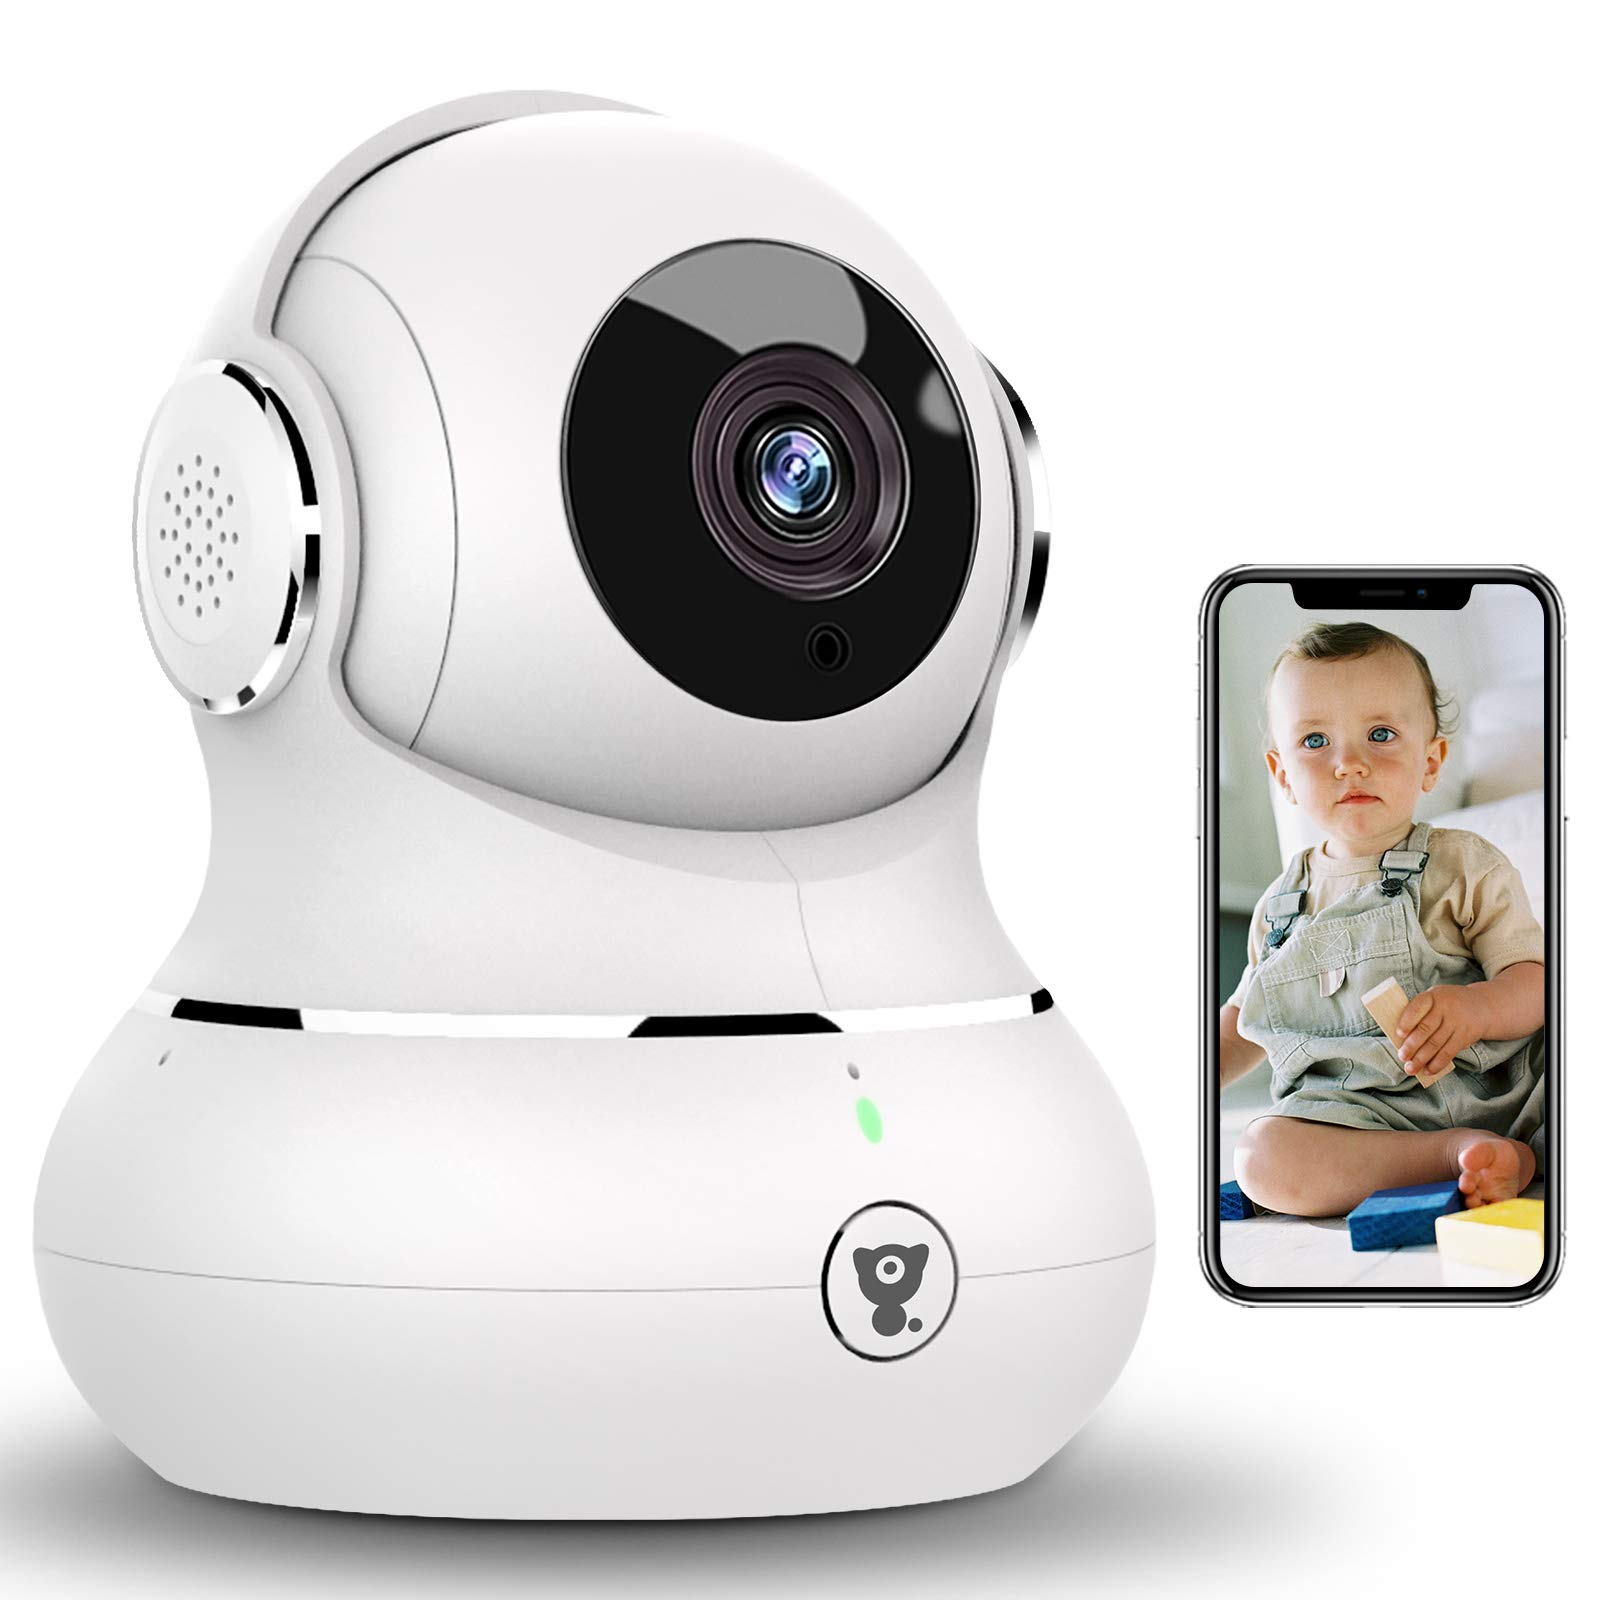 [New Upgrade]Littlelf Wifi Camera,Baby Monitor IP Camera 1080P Security Camera for Pet/Nanny,Dog Camera with Motion Detection,NightVision Tilt Zoom,Works with Alex